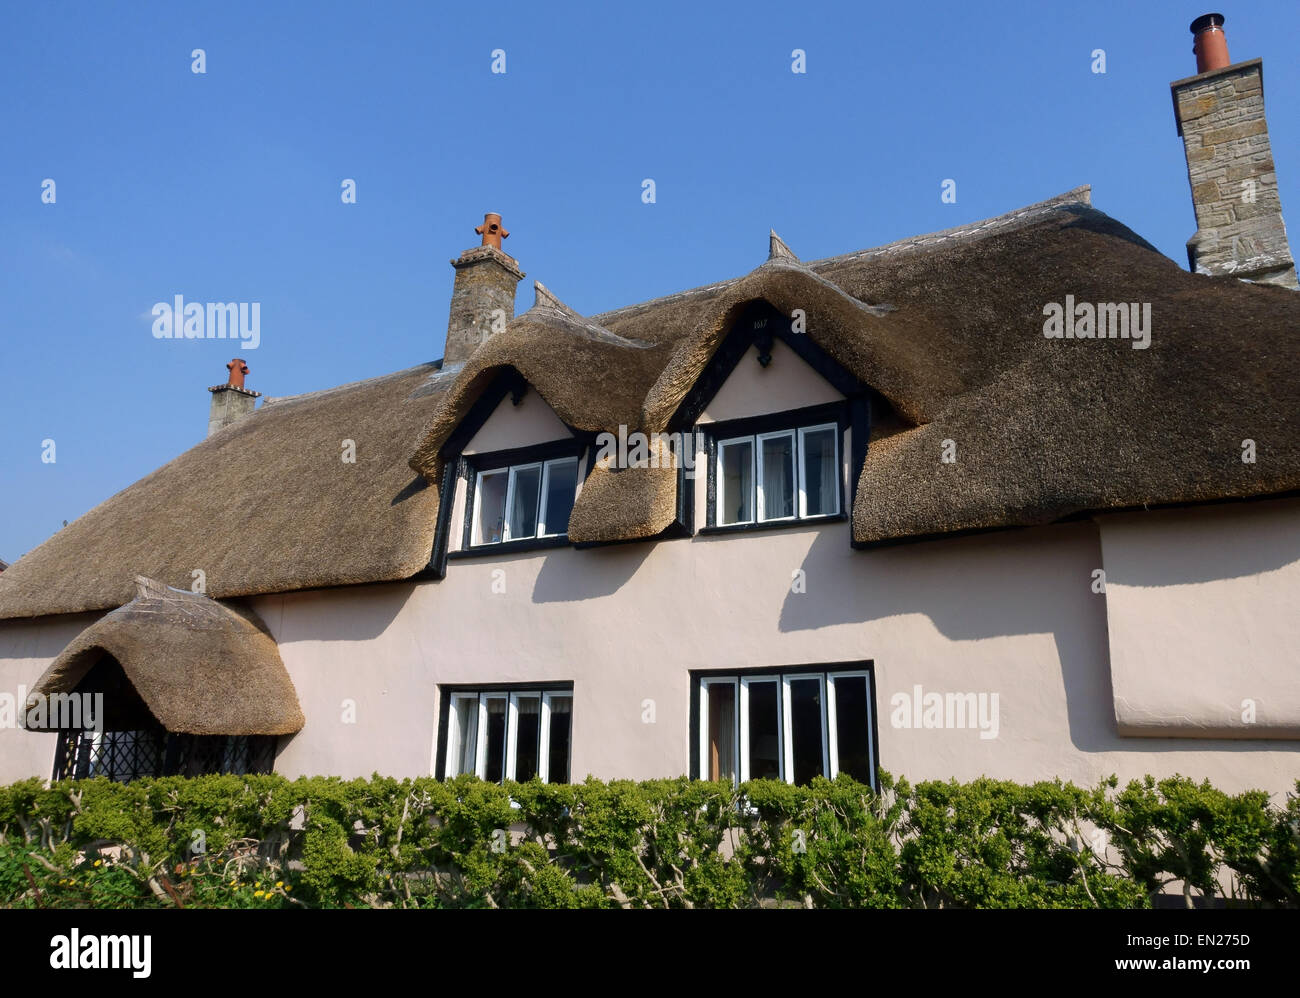 Traditional thatched roof house in village in somerset england stock photo royalty free image - Traditional houses attic ...